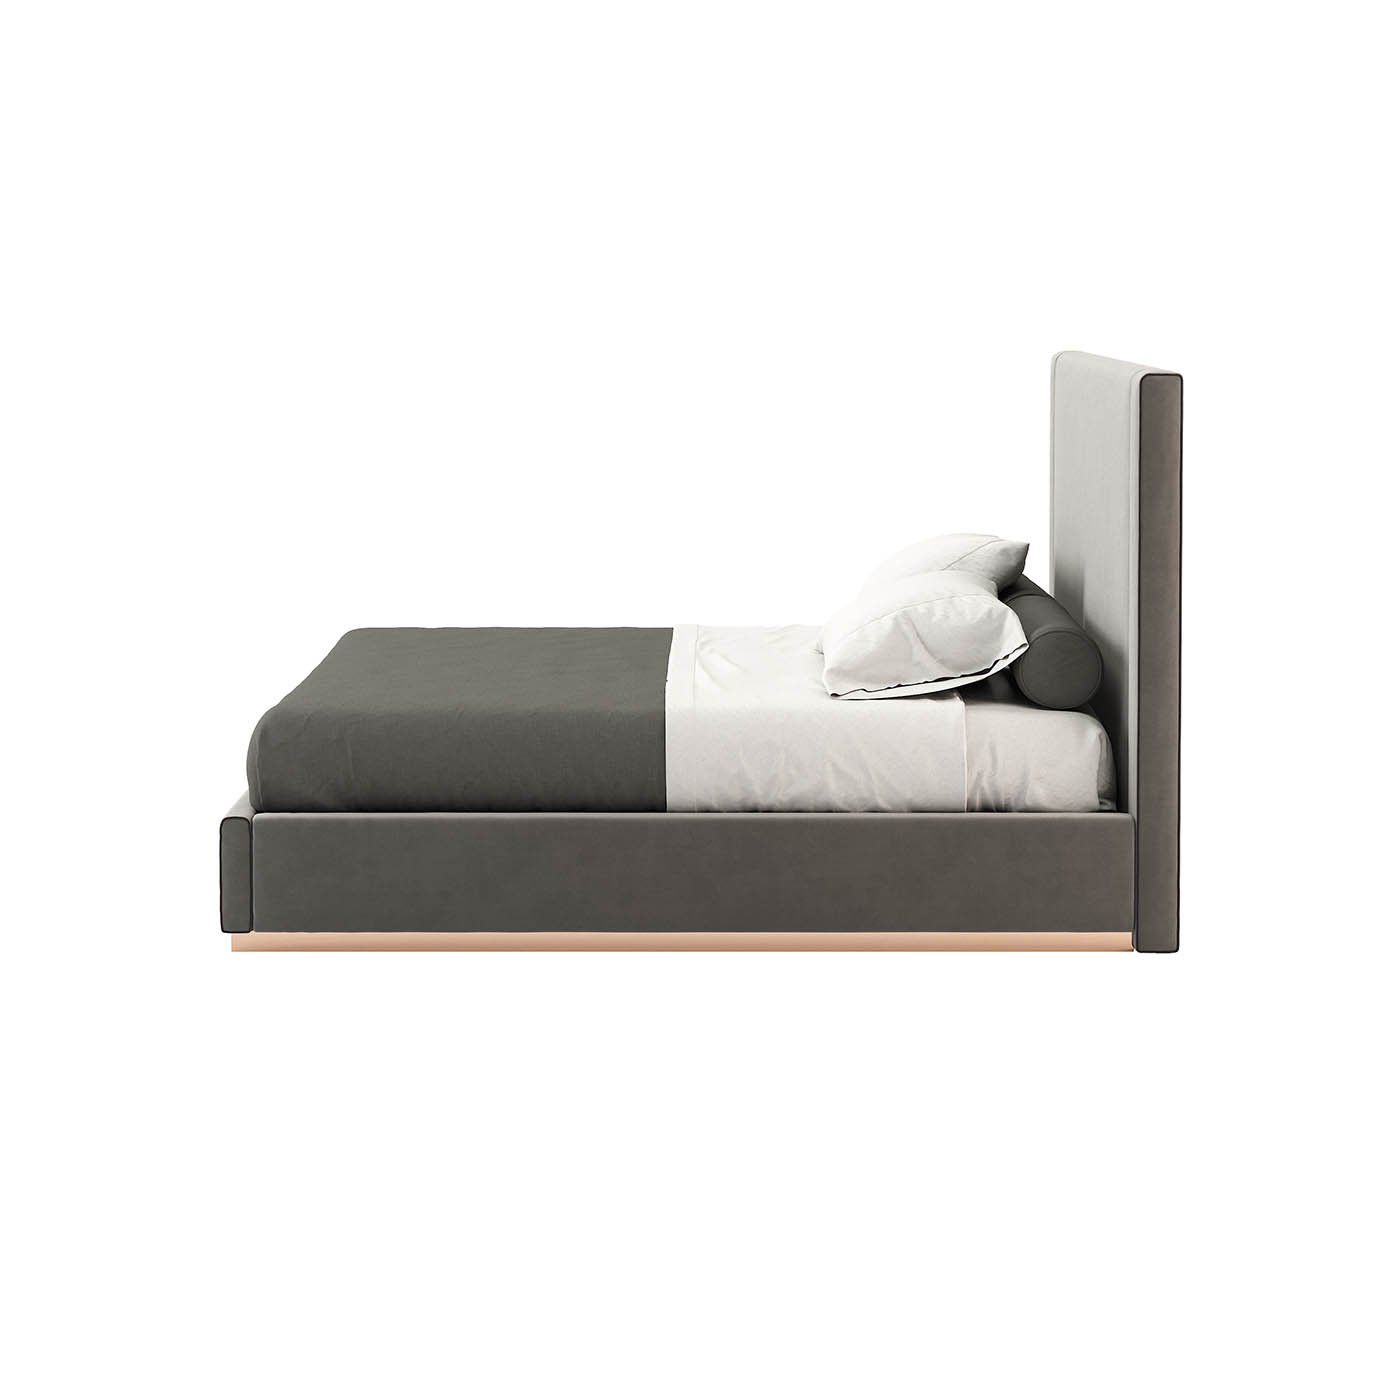 Corin Bed